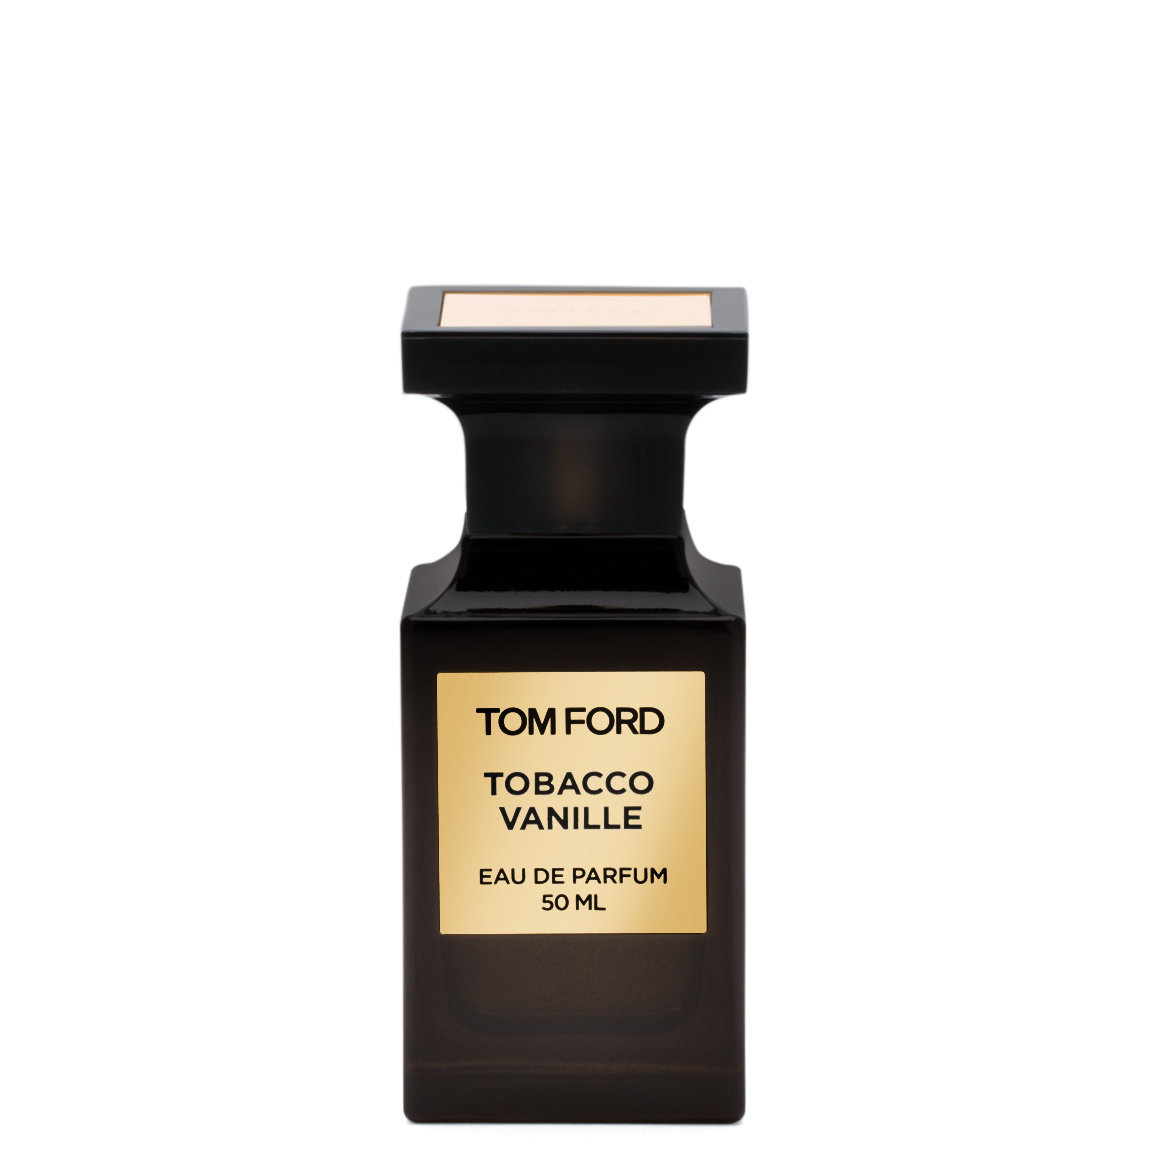 TOM FORD Tobacco Vanille 50 ml product swatch.